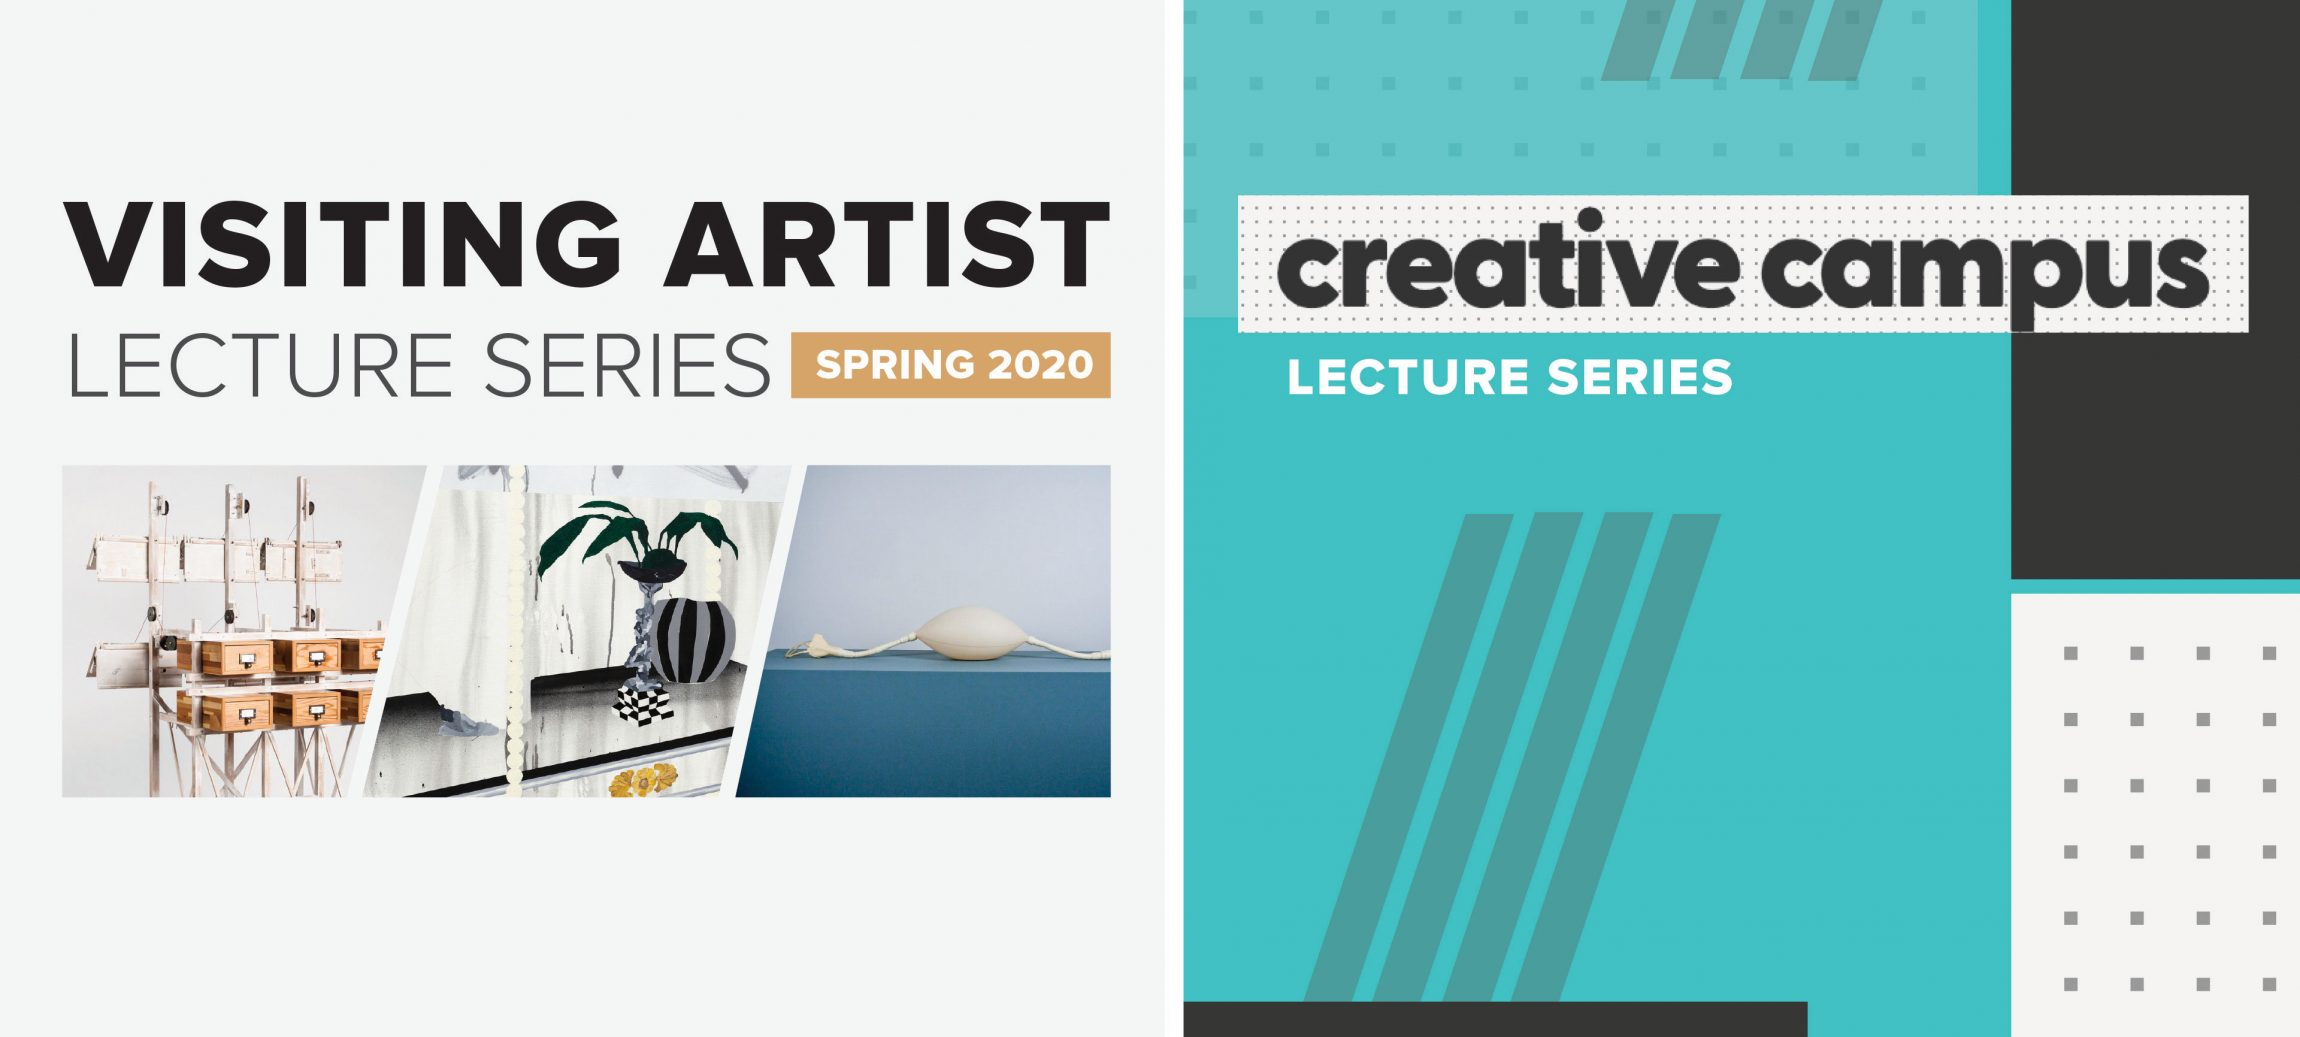 Artist Lecture Series image